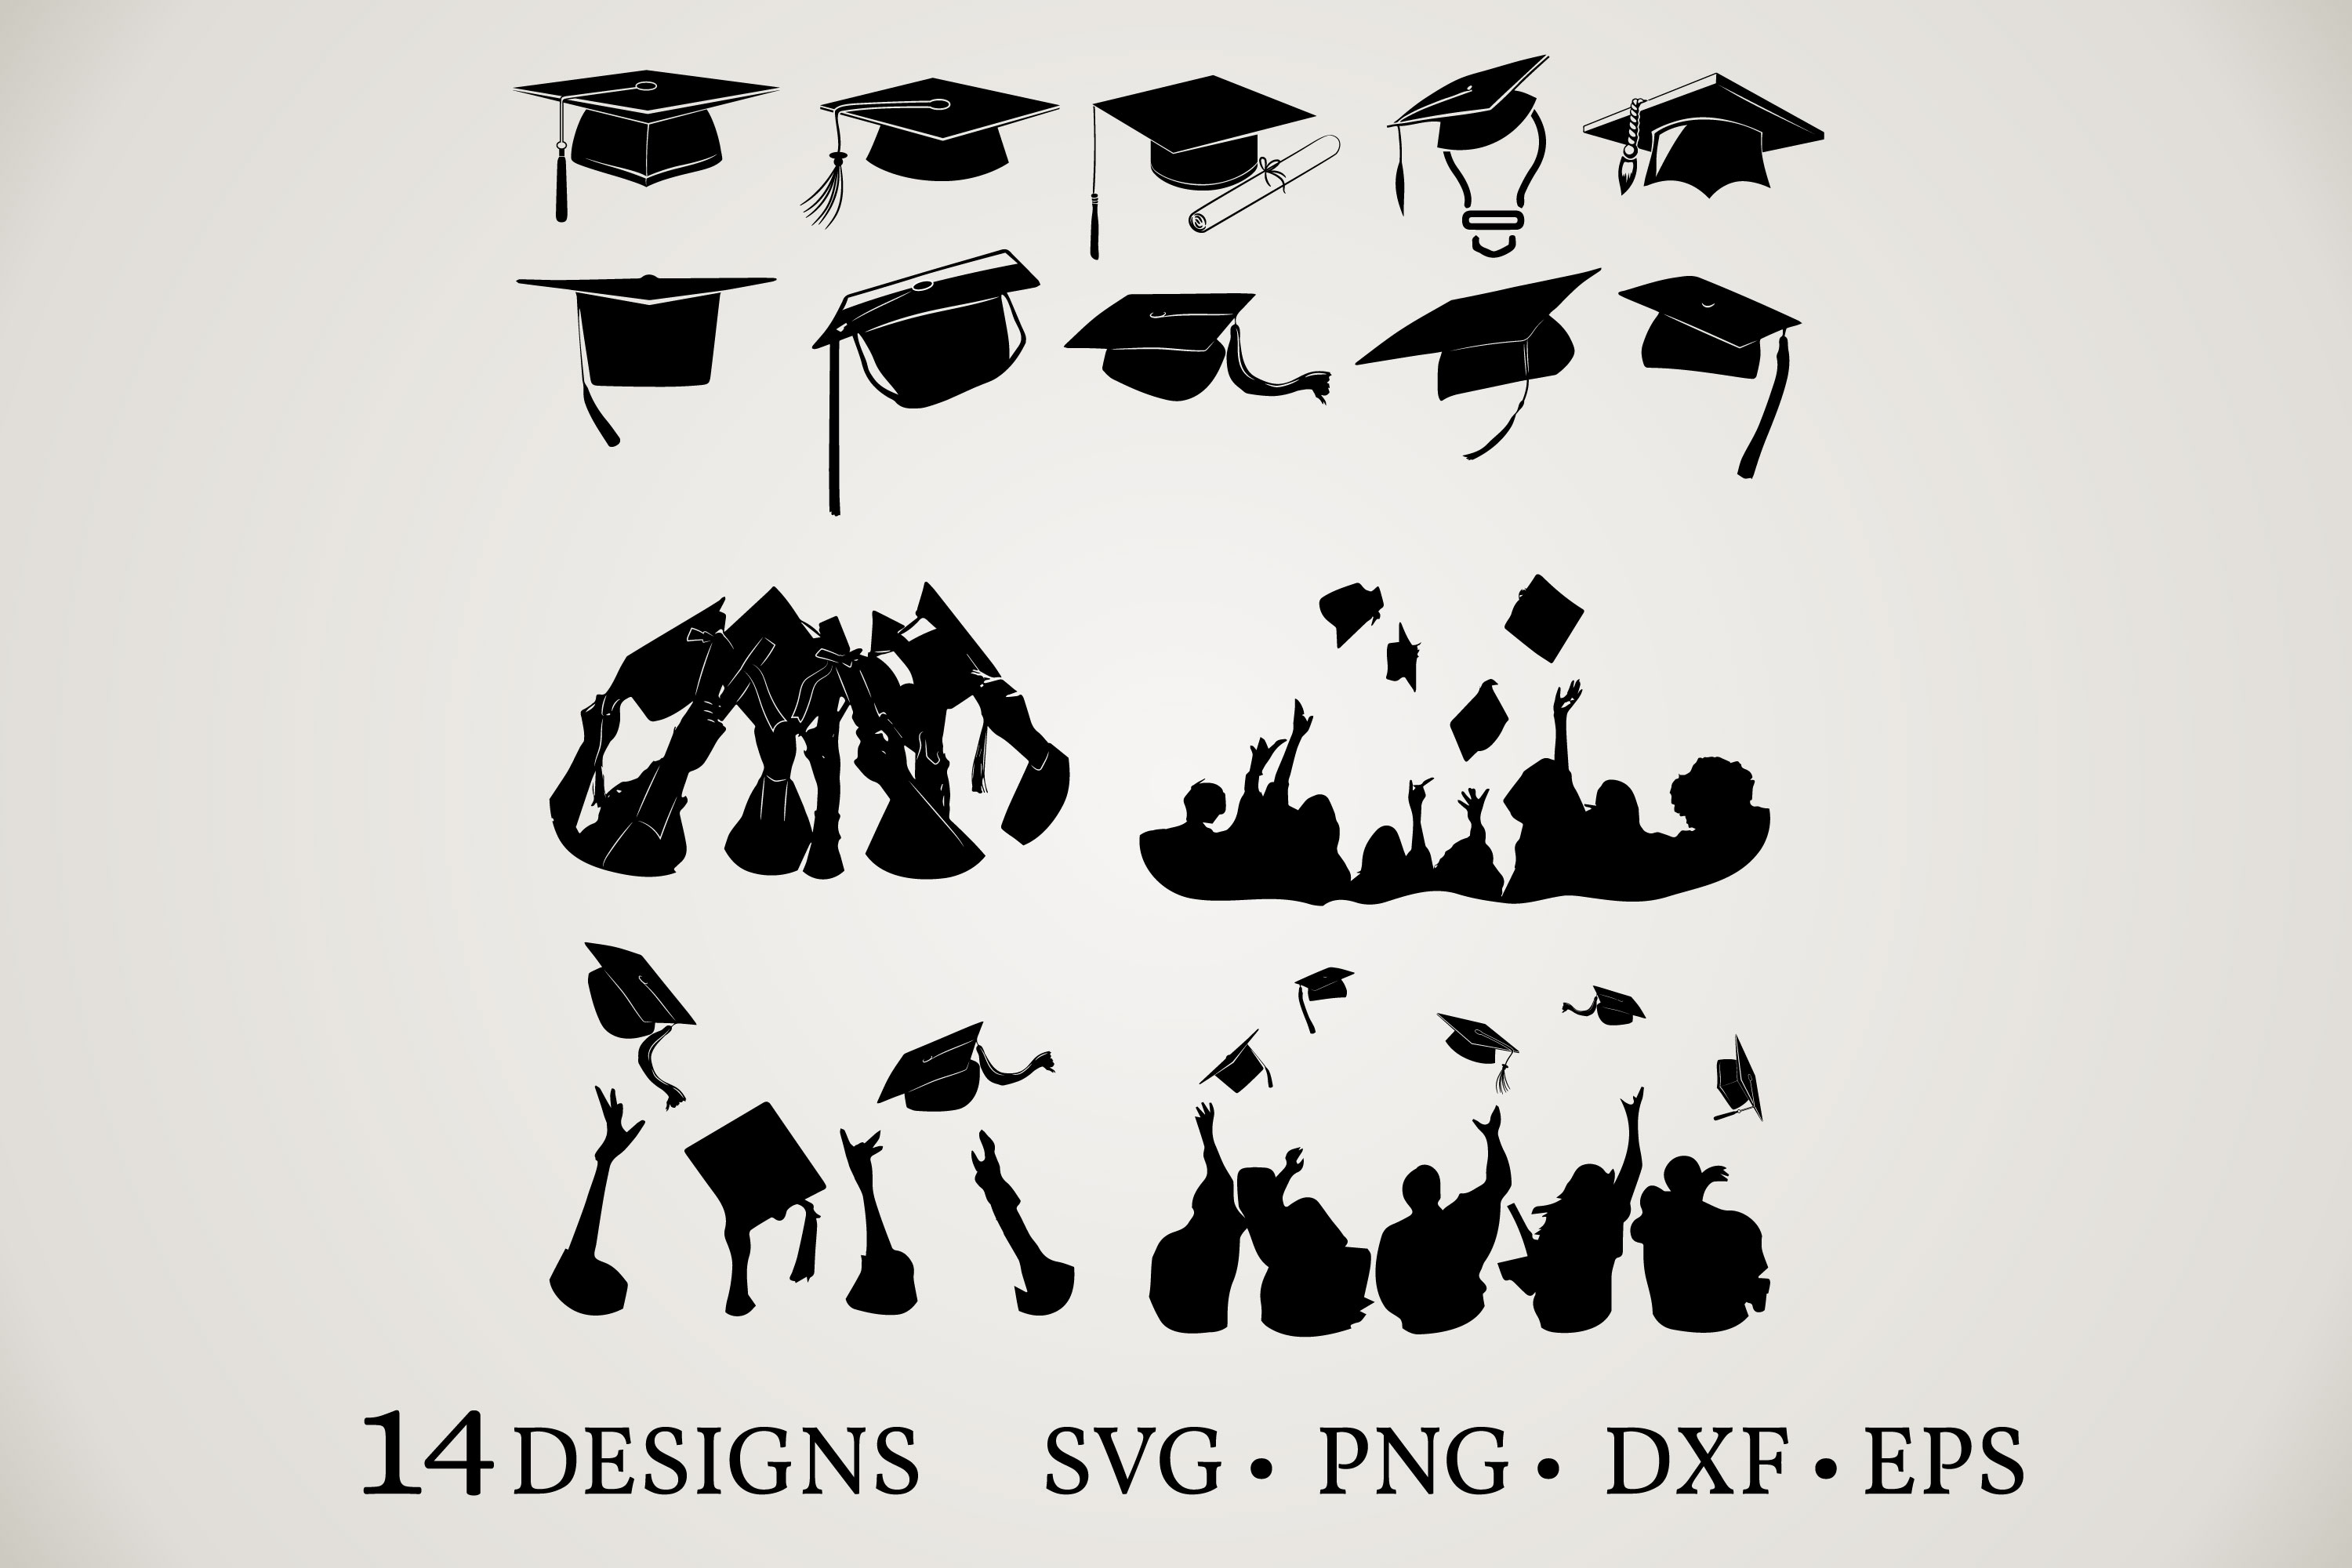 Download Free Graduation Bundle Graphic By Euphoria Design Creative Fabrica for Cricut Explore, Silhouette and other cutting machines.